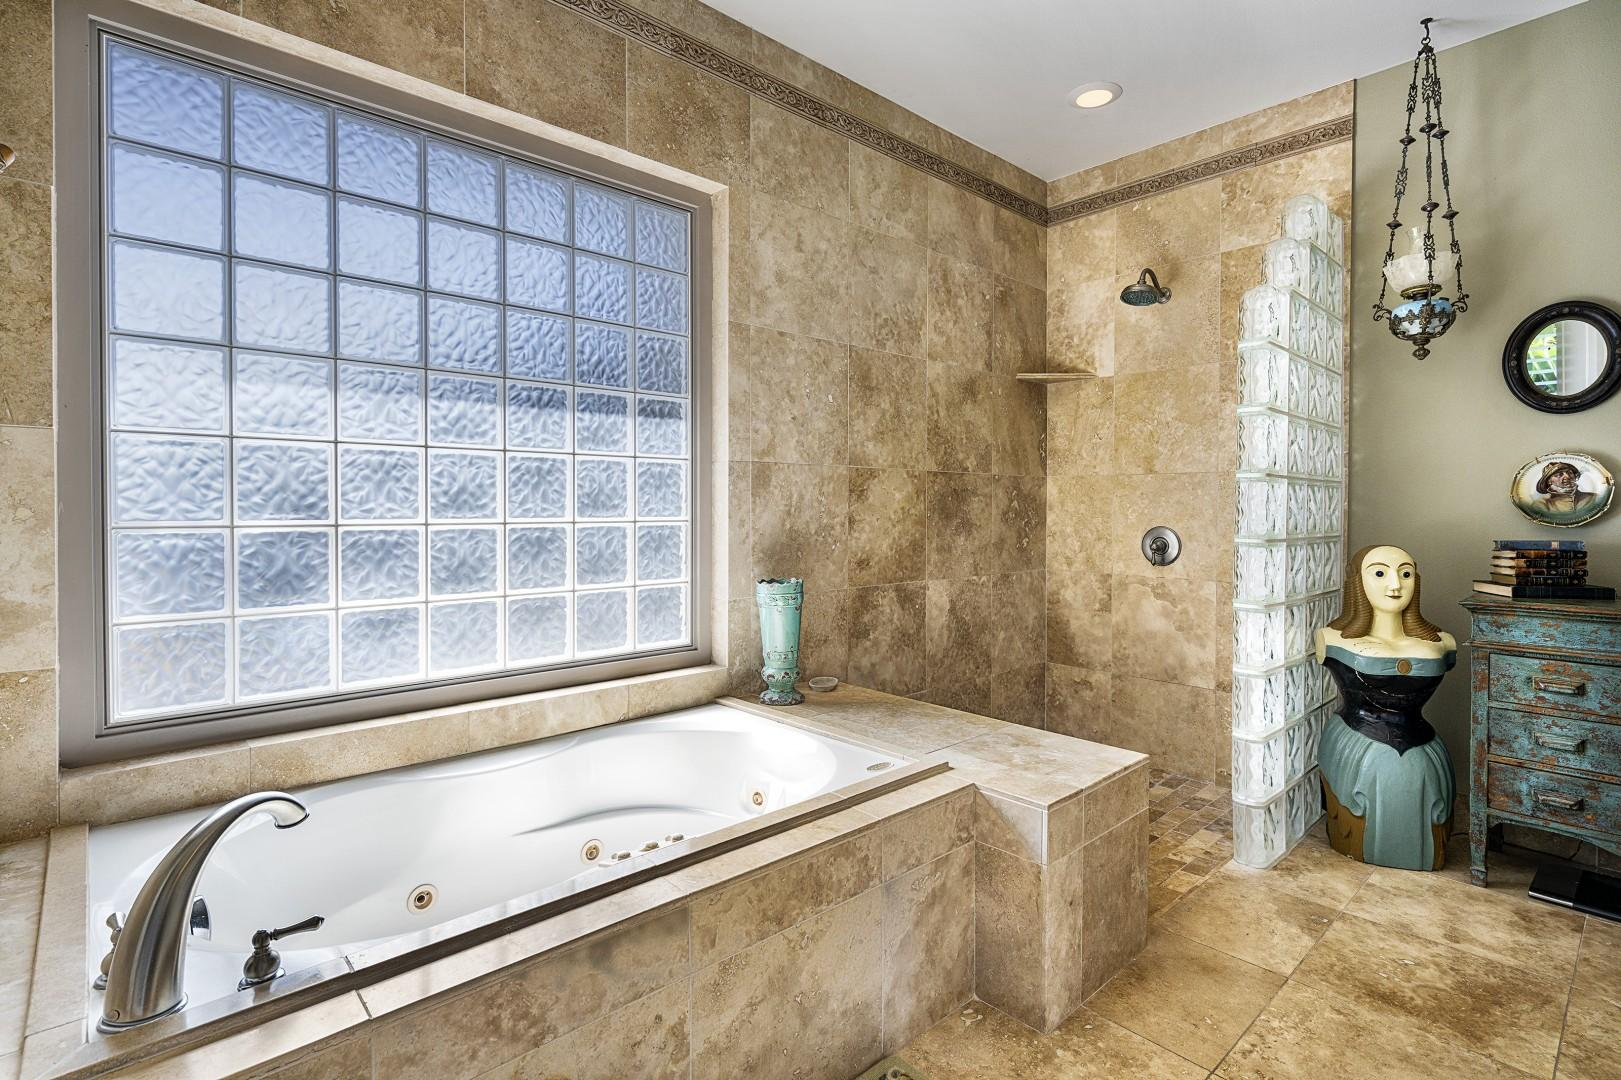 Large soaking tub and walk-in shower can be found in the Master suite